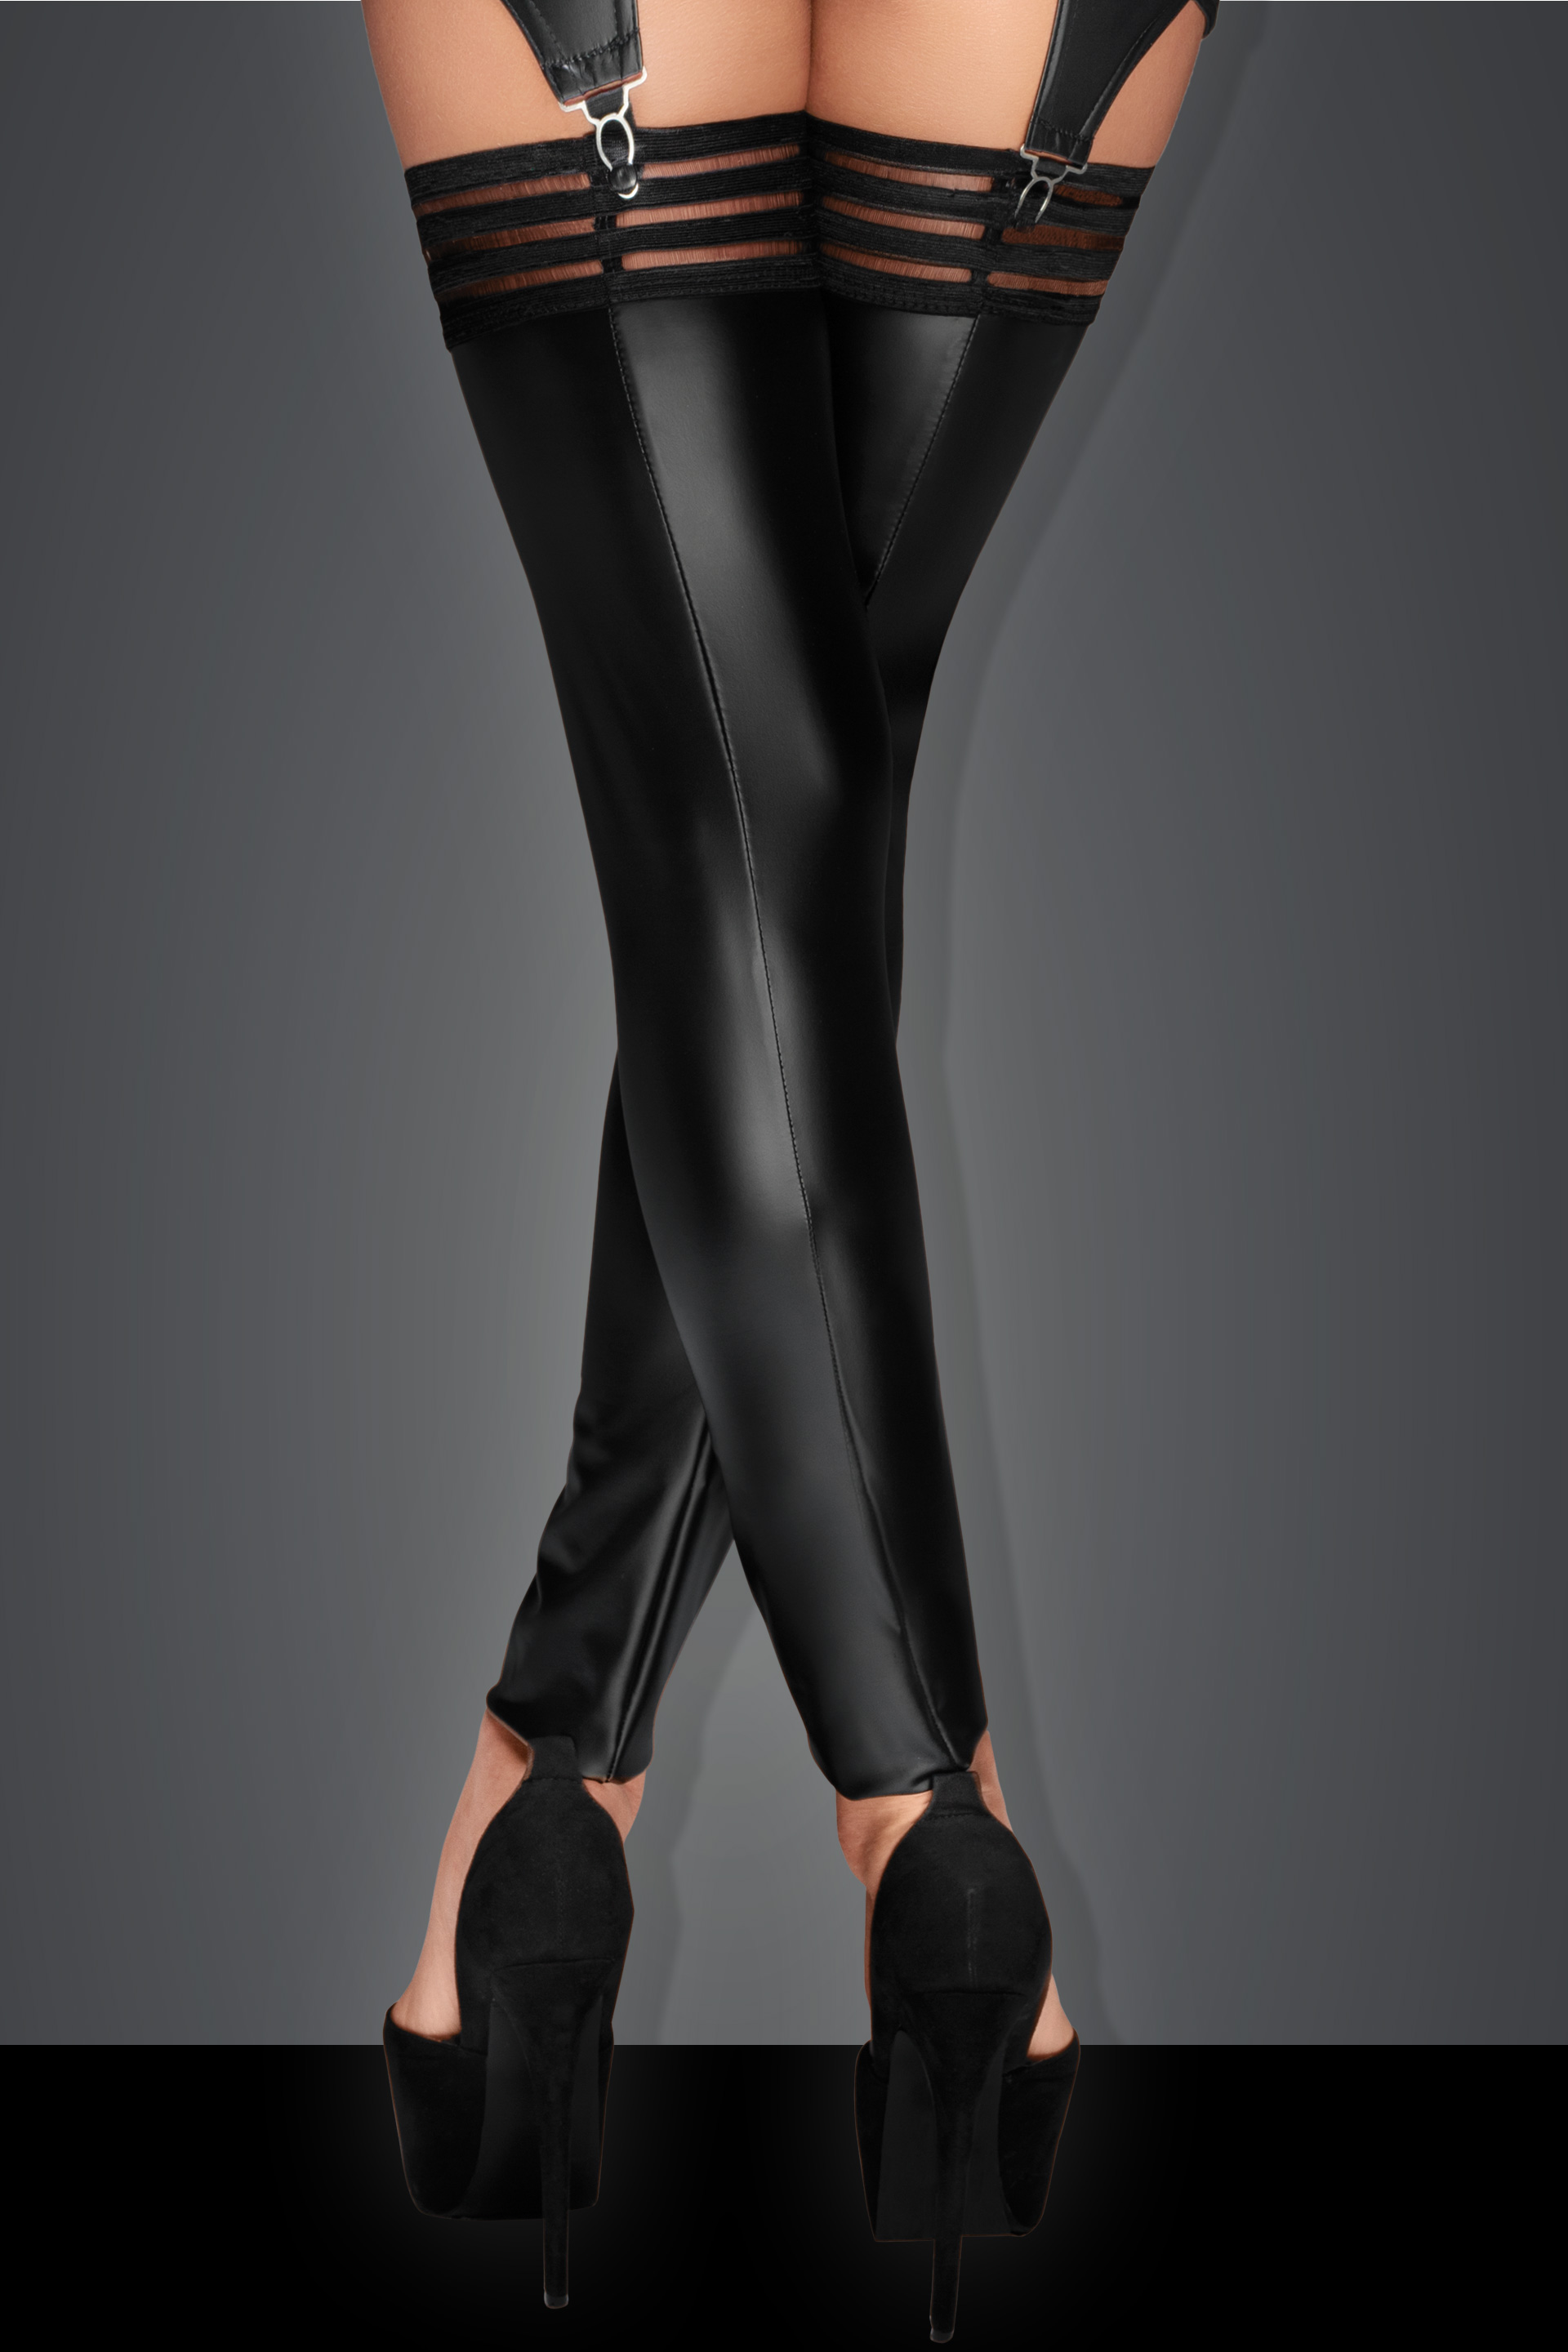 F158 Powerwetlook stockings with elastic tape